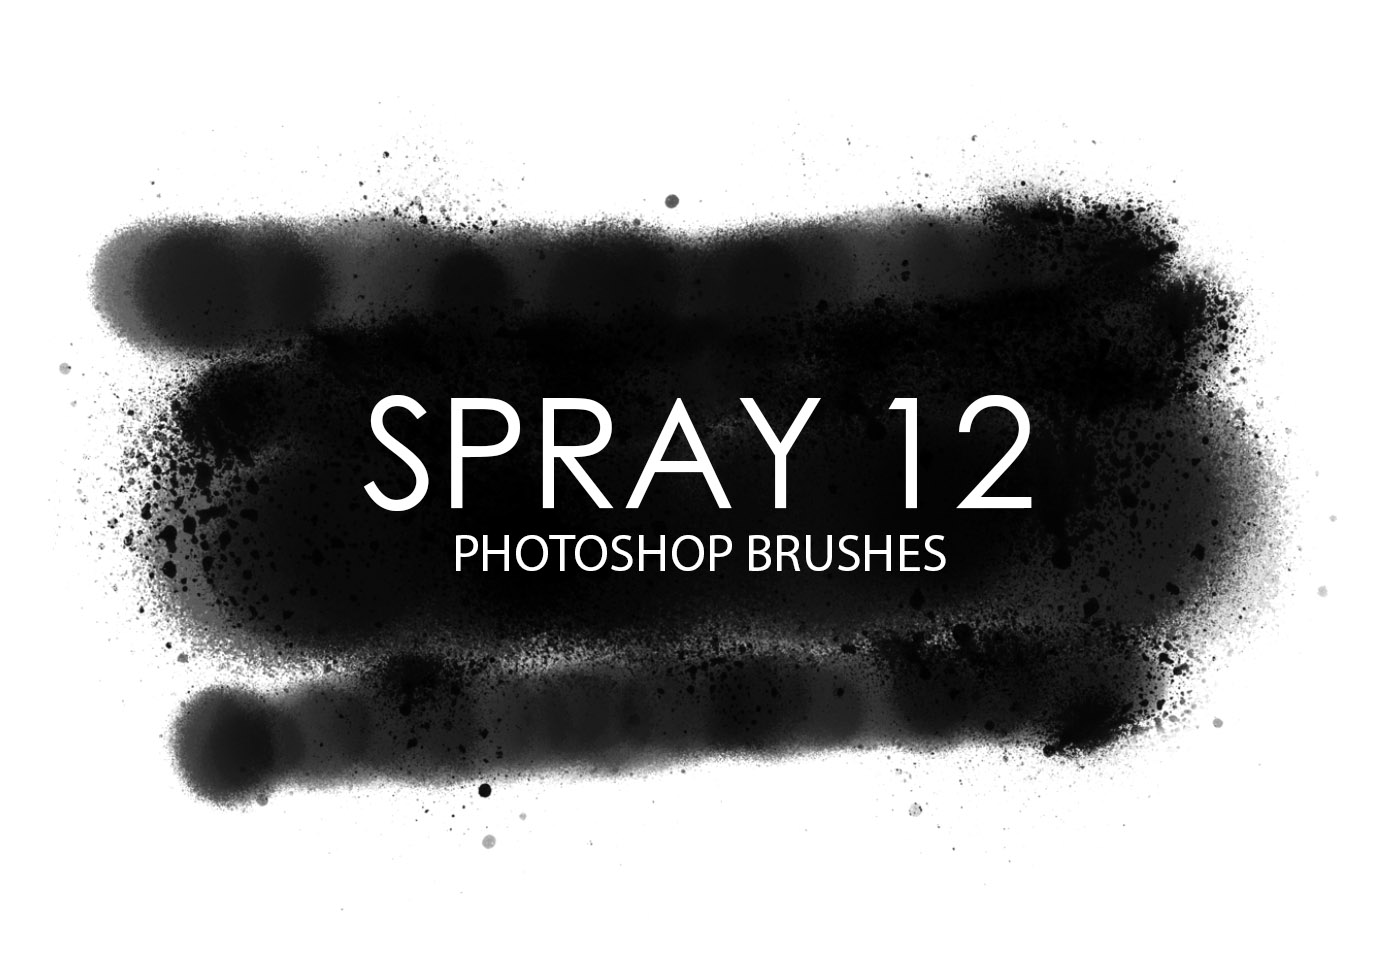 250+ Free Photoshop Fish Brushes | FreeCreatives